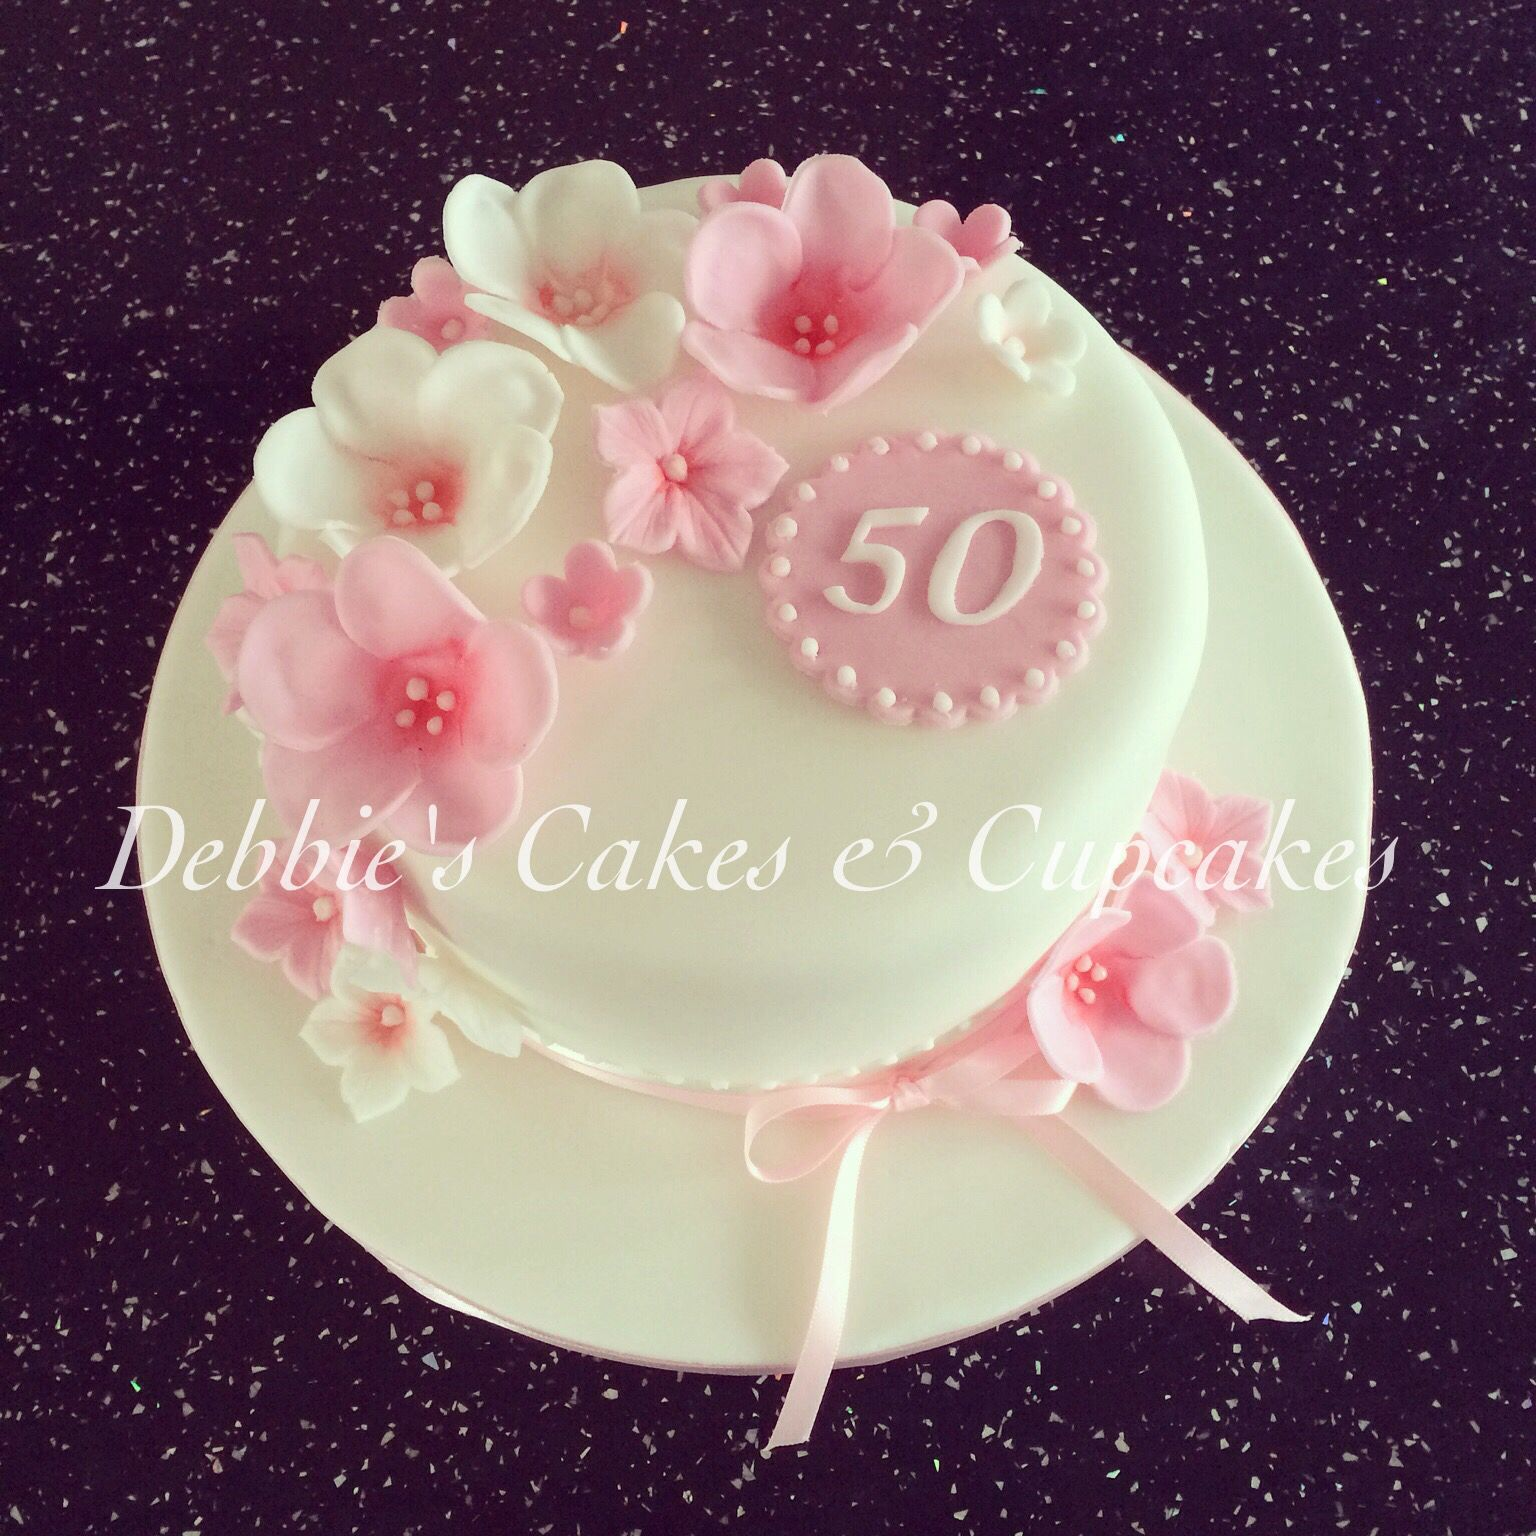 50th birthday cake, with pink and white flowers